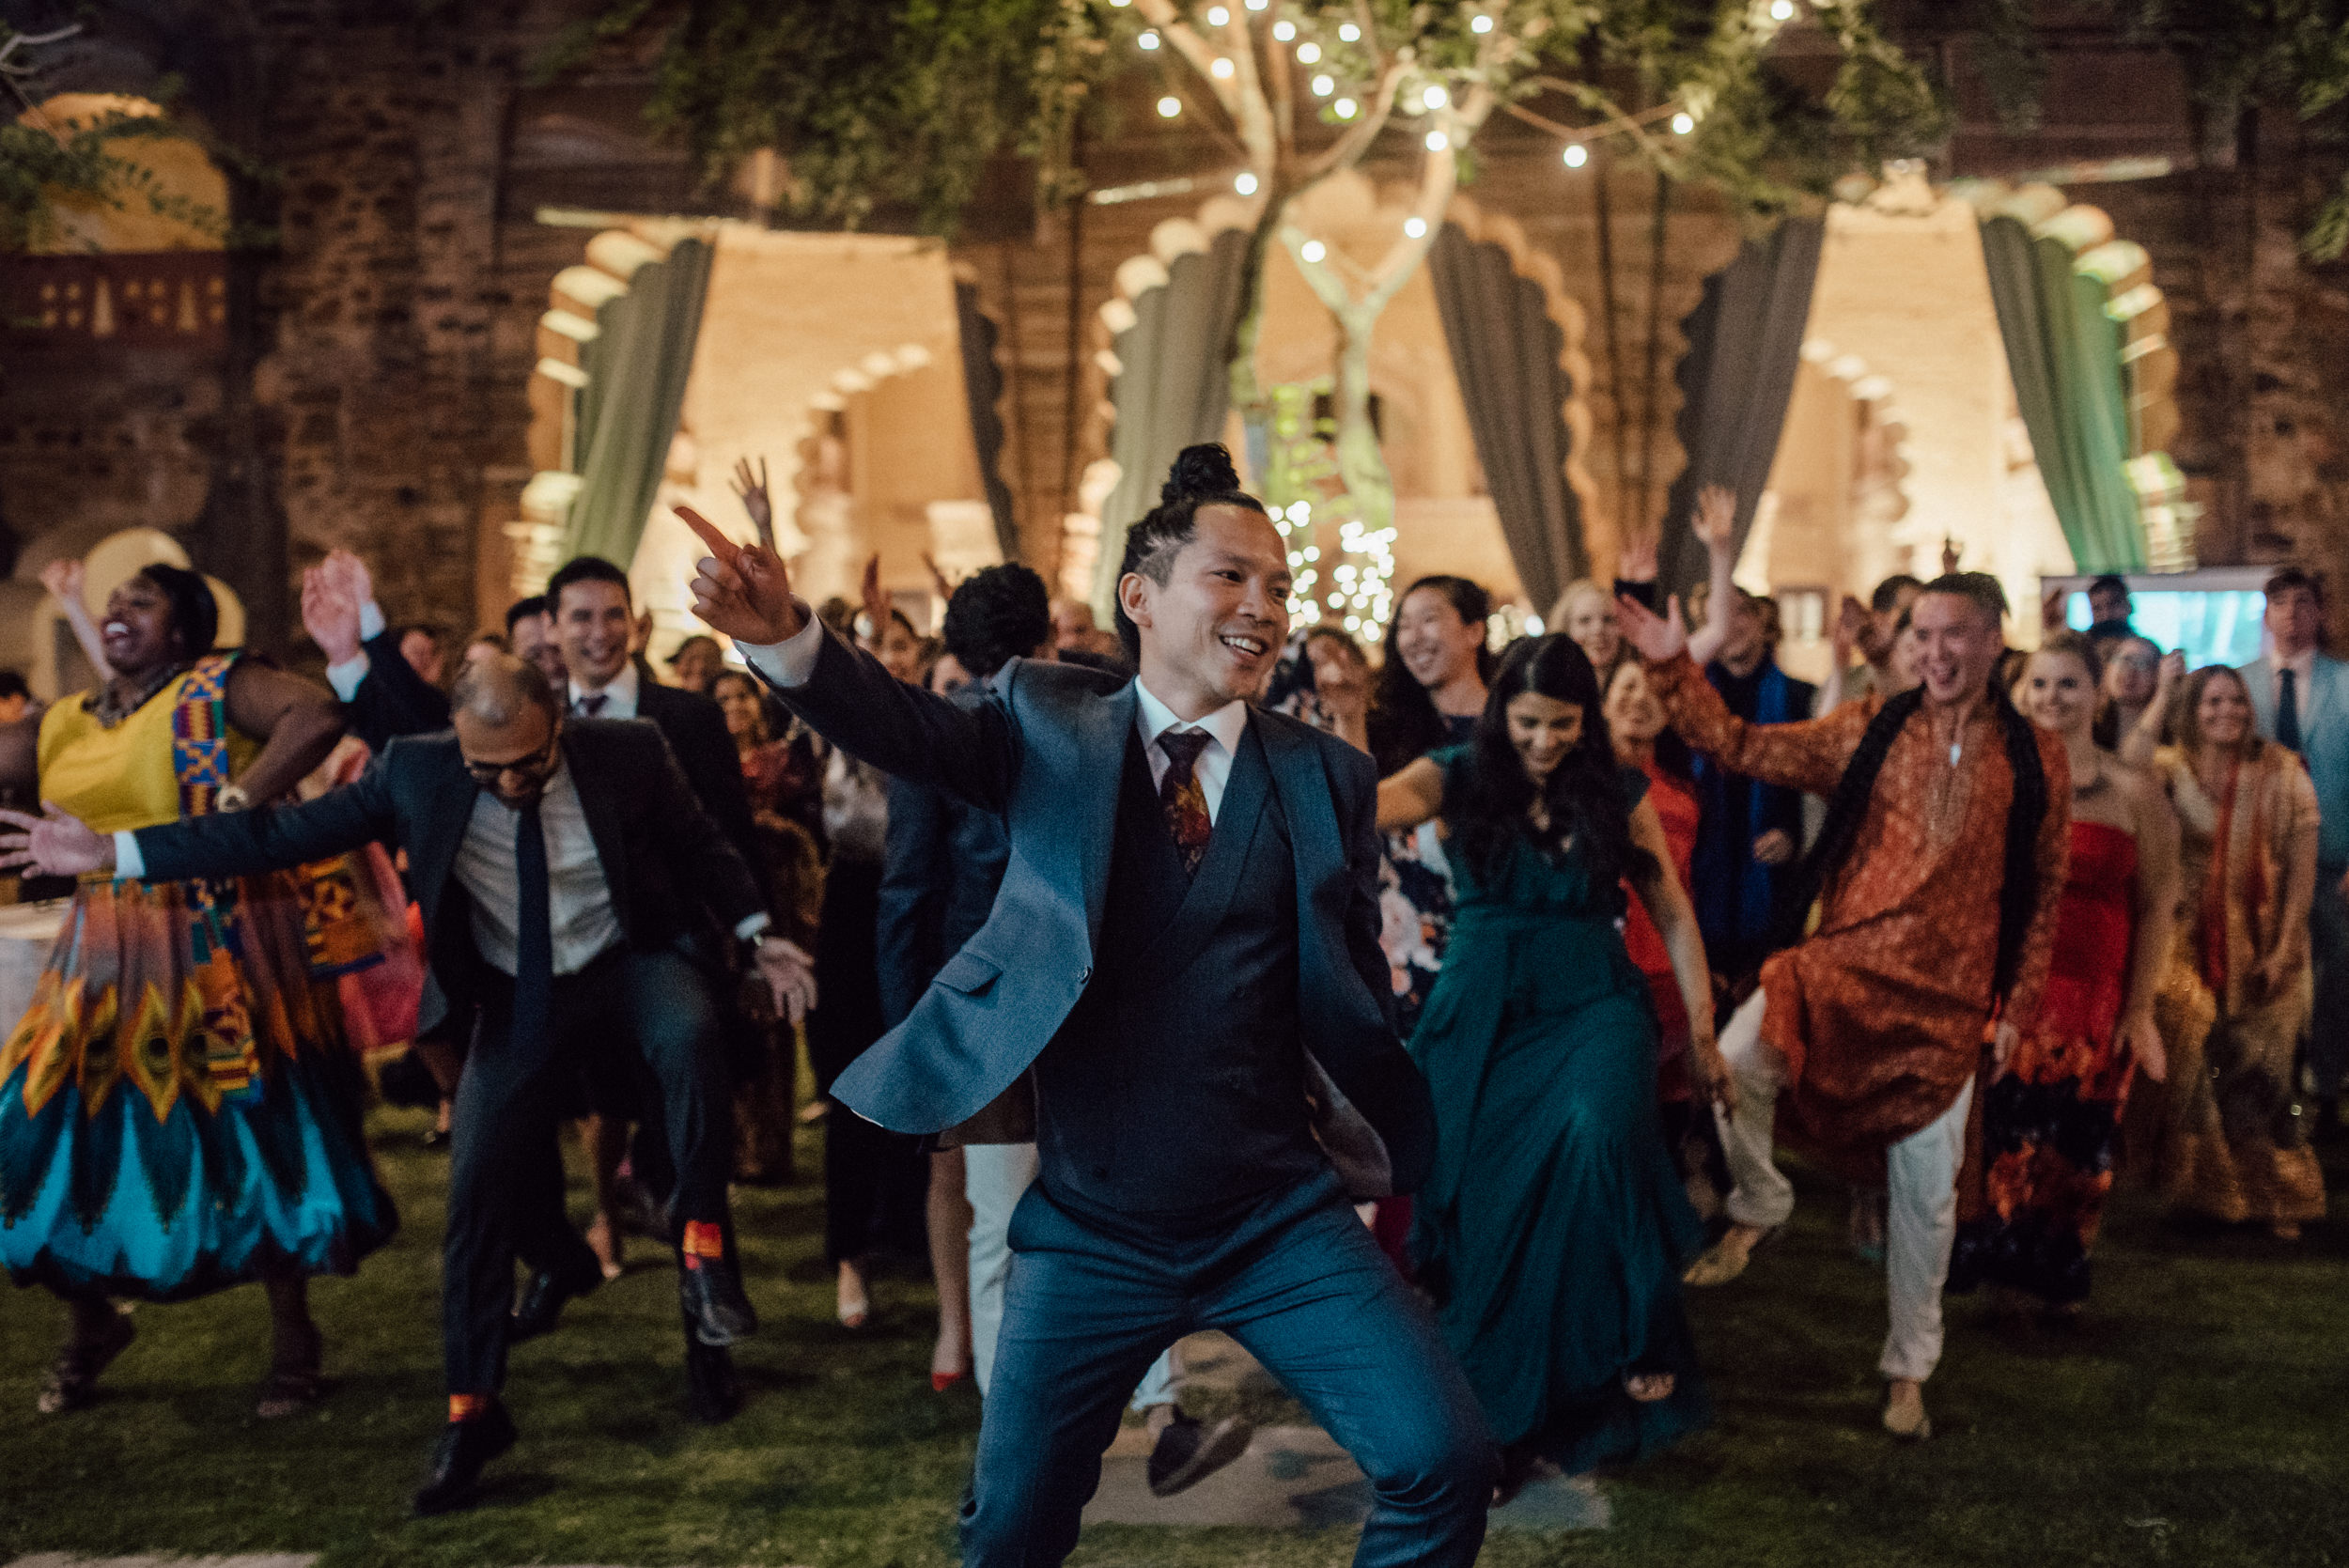 Flash mob at destination wedding